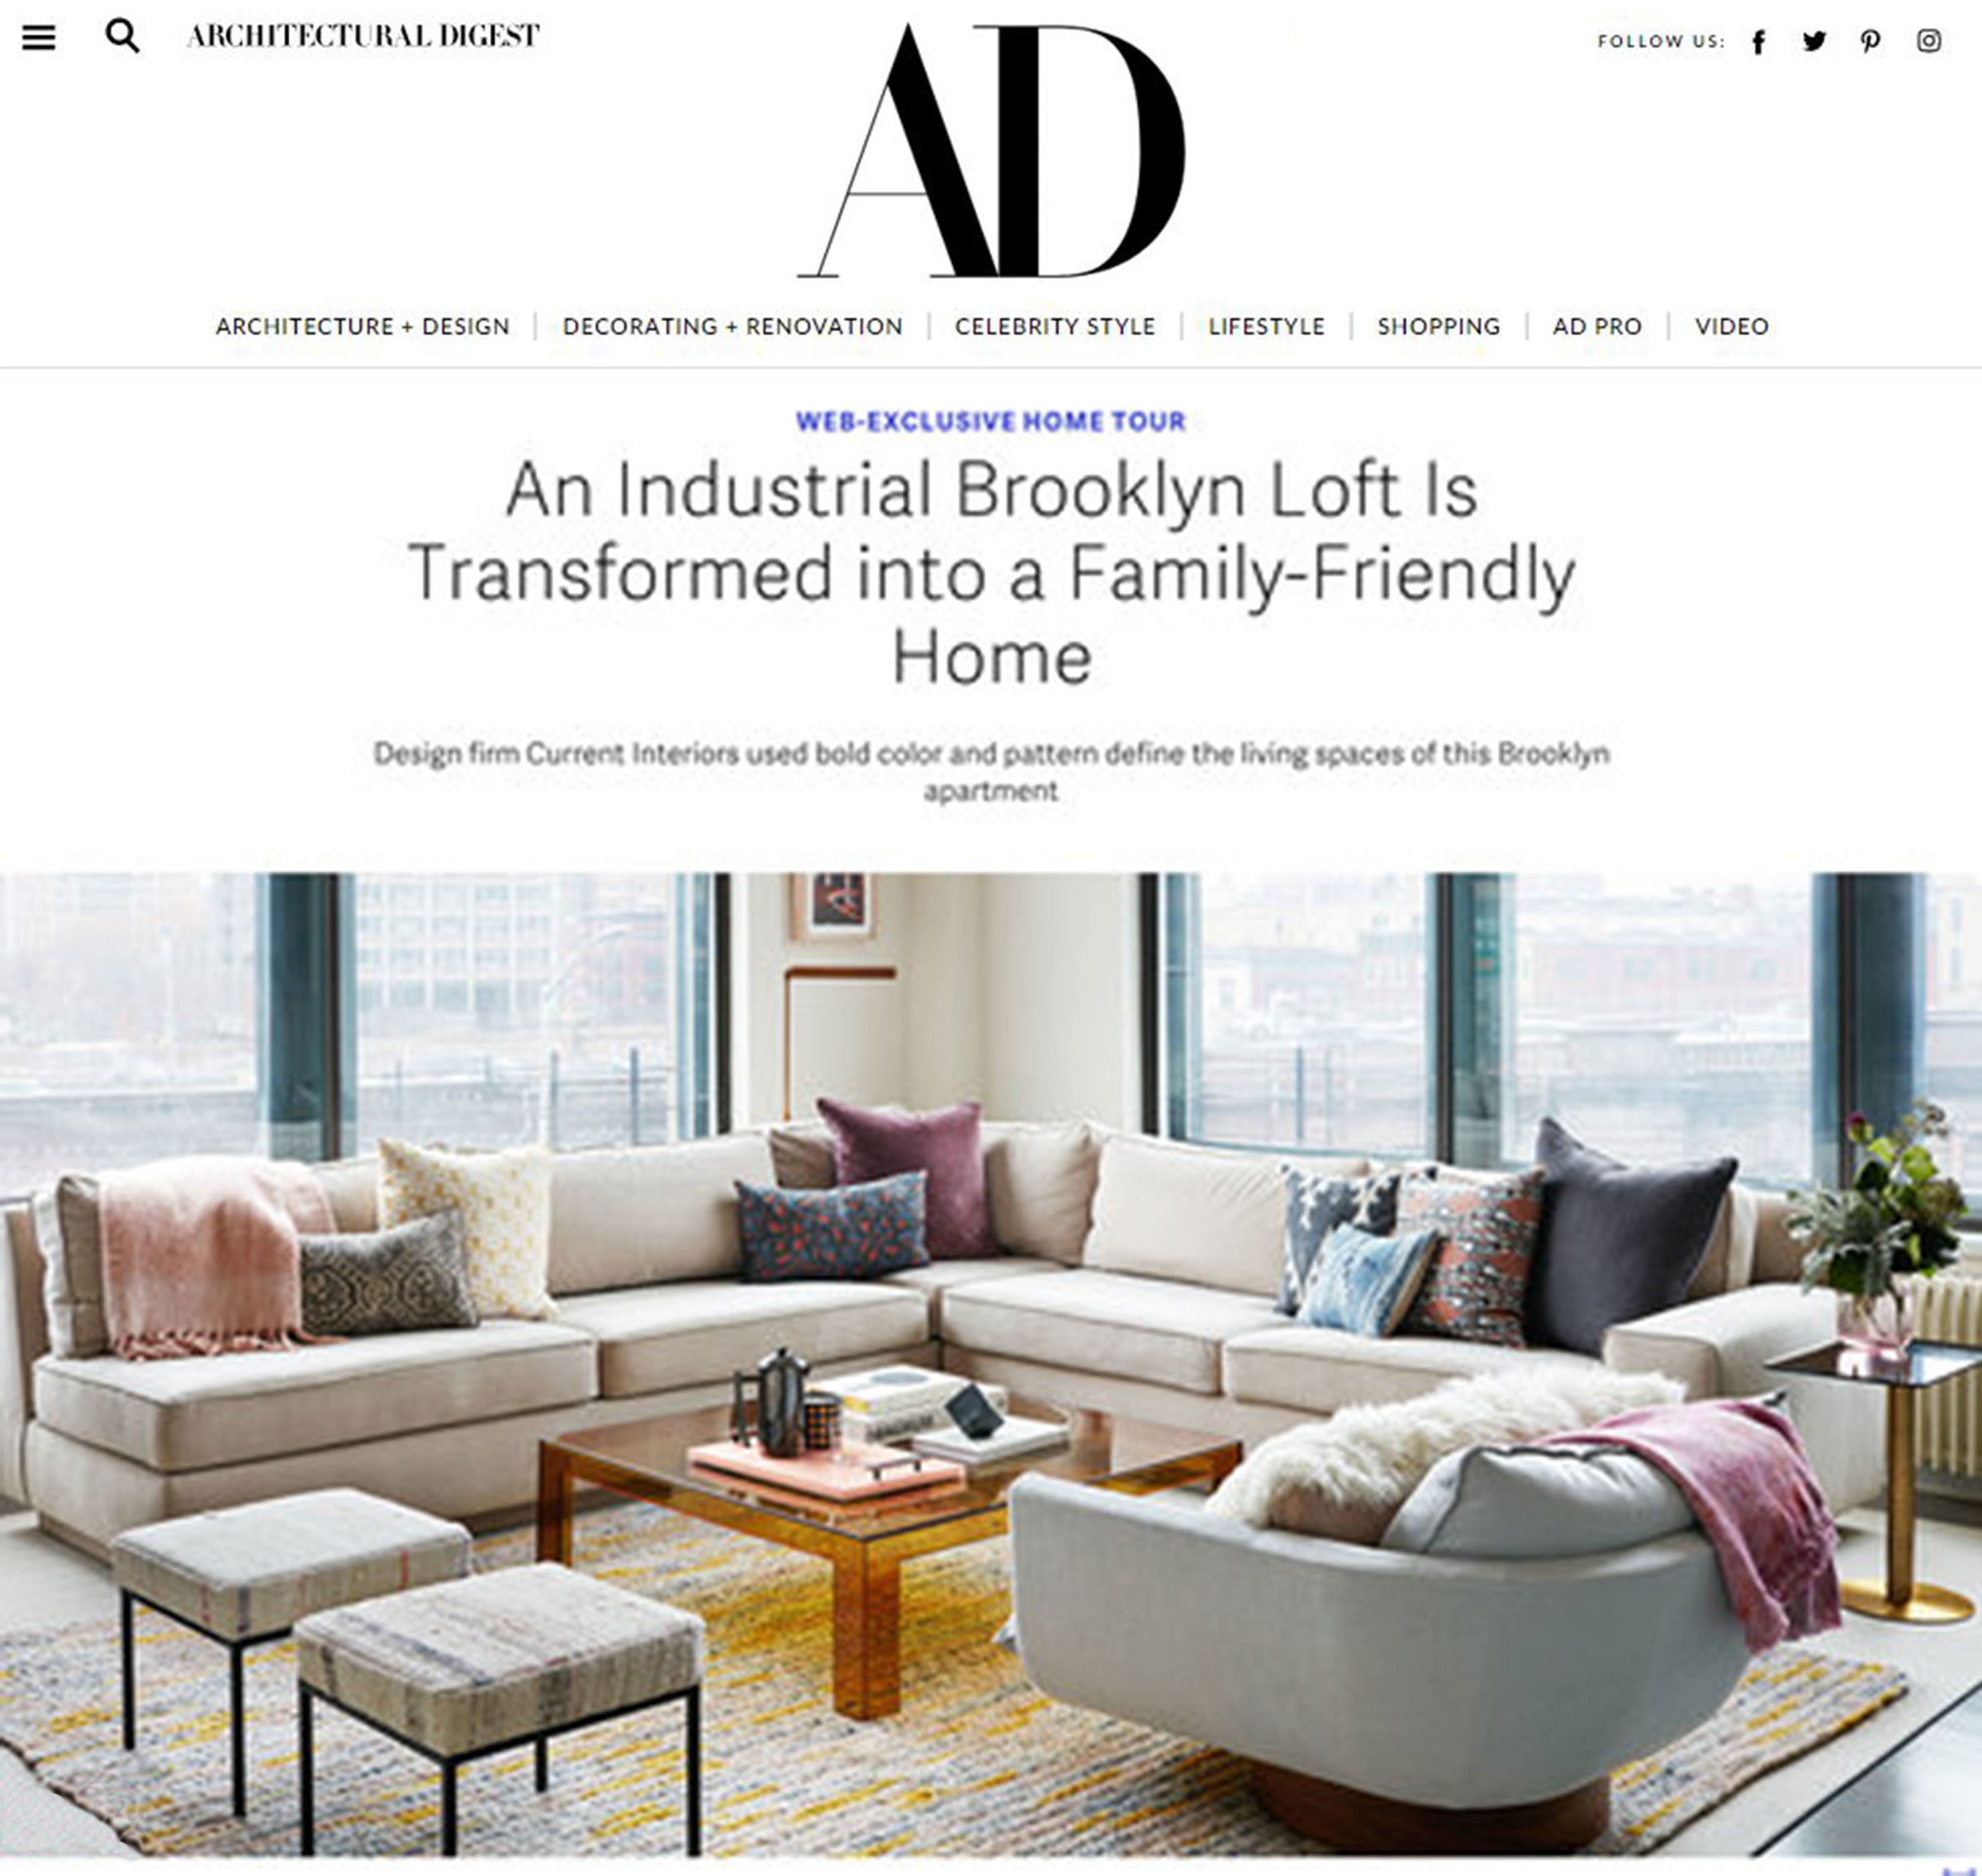 - Architectural DigestJanuary, 2016For many interior designers, an 1,800-square-foot Brooklyn loft would be an invitation to embrace minimalism or industrial details, but that wasn't the case for Rachel Kane and Xandro Aventajado of the New York–based firm Current Interiors...